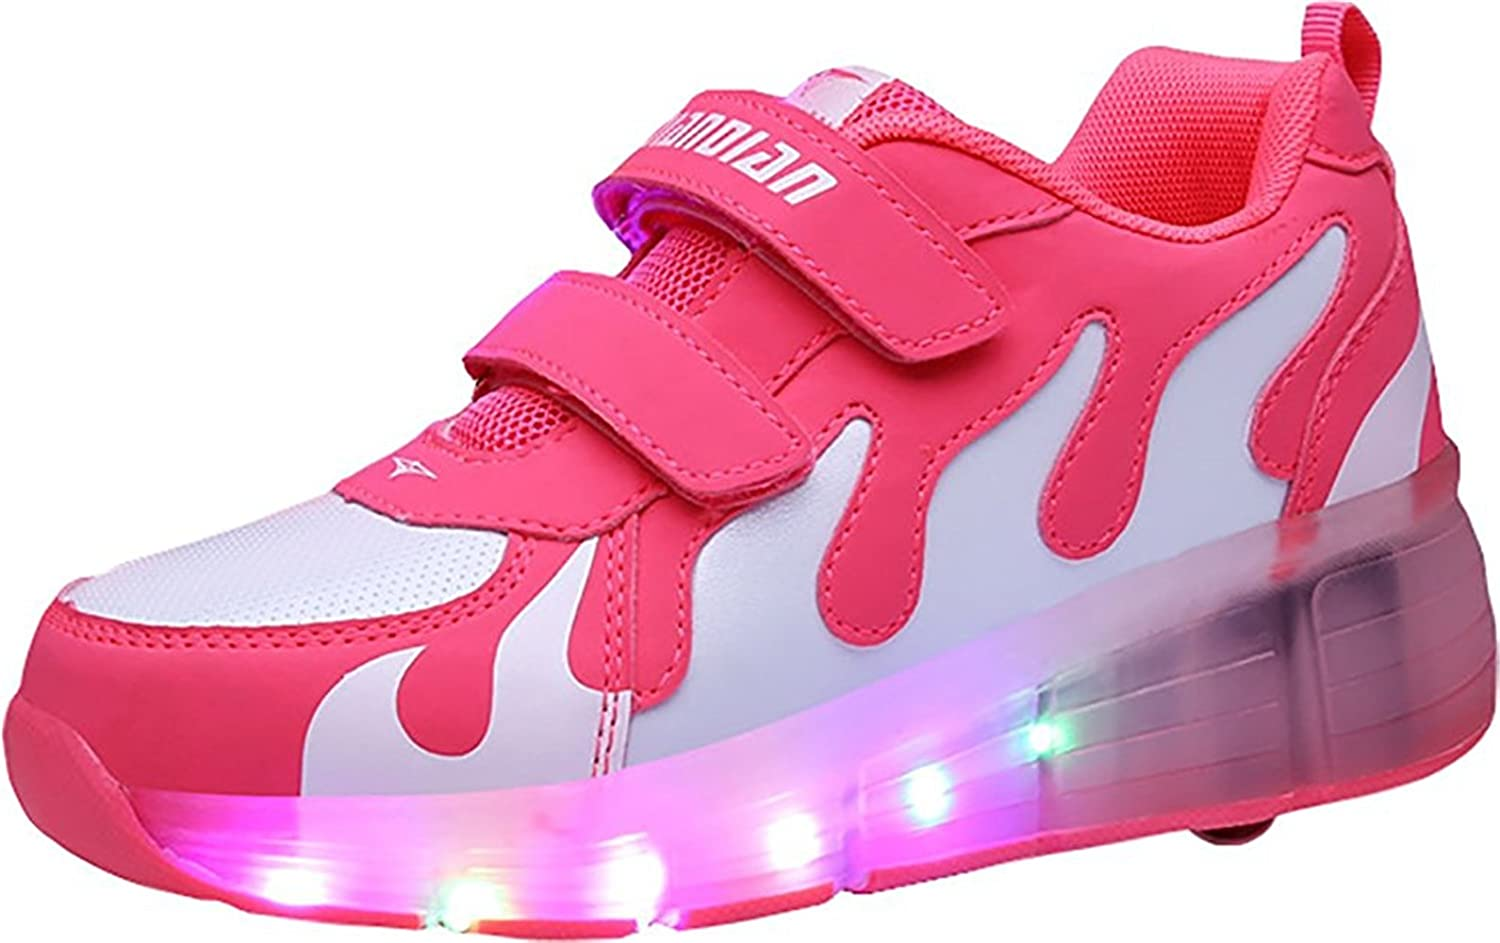 Men's/Women's EVLYN Kids Kids Kids Shoes LED Light up Shoes Roller Skate Shoes Unisex Kids Boy Girl Flashing Sneakers Kids Gift The color is very eye-catching Carefully selected materials Extreme speed logistics GR8189 a96866